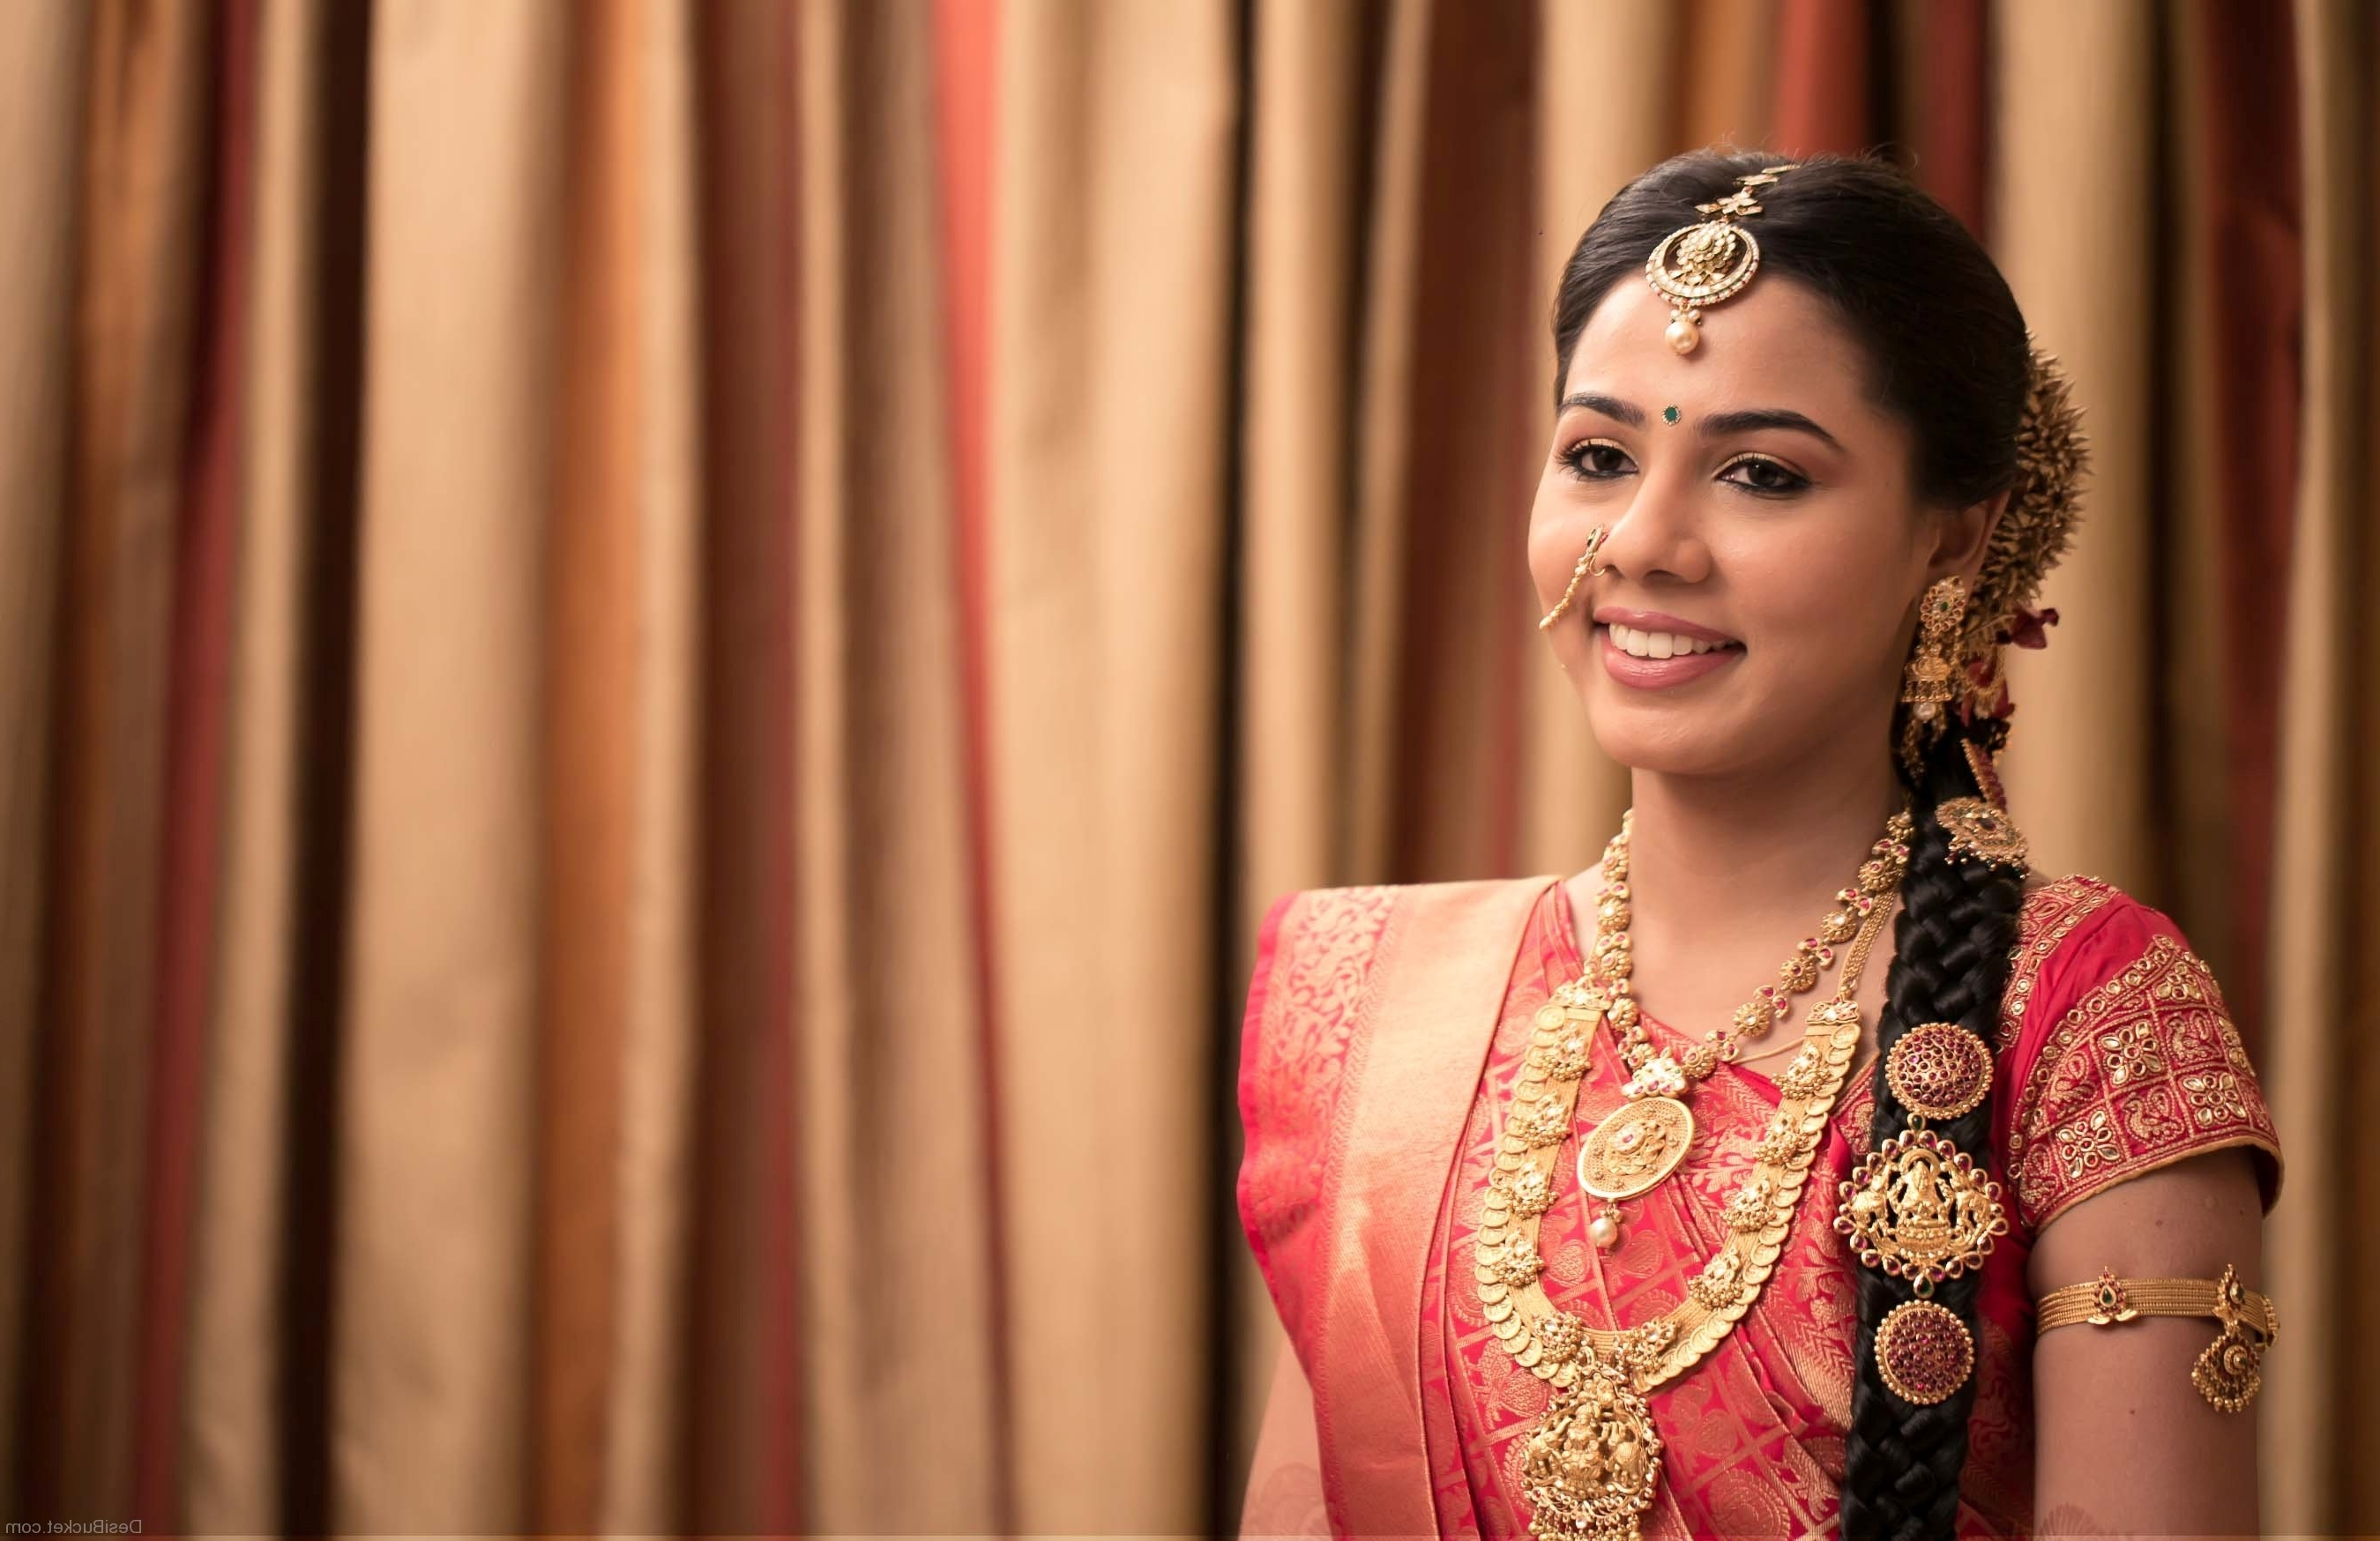 Best And Newest South Indian Tamil Bridal Wedding Hairstyles With Confortable Reception Hairstyle For South Indian Bride For Your (View 14 of 15)